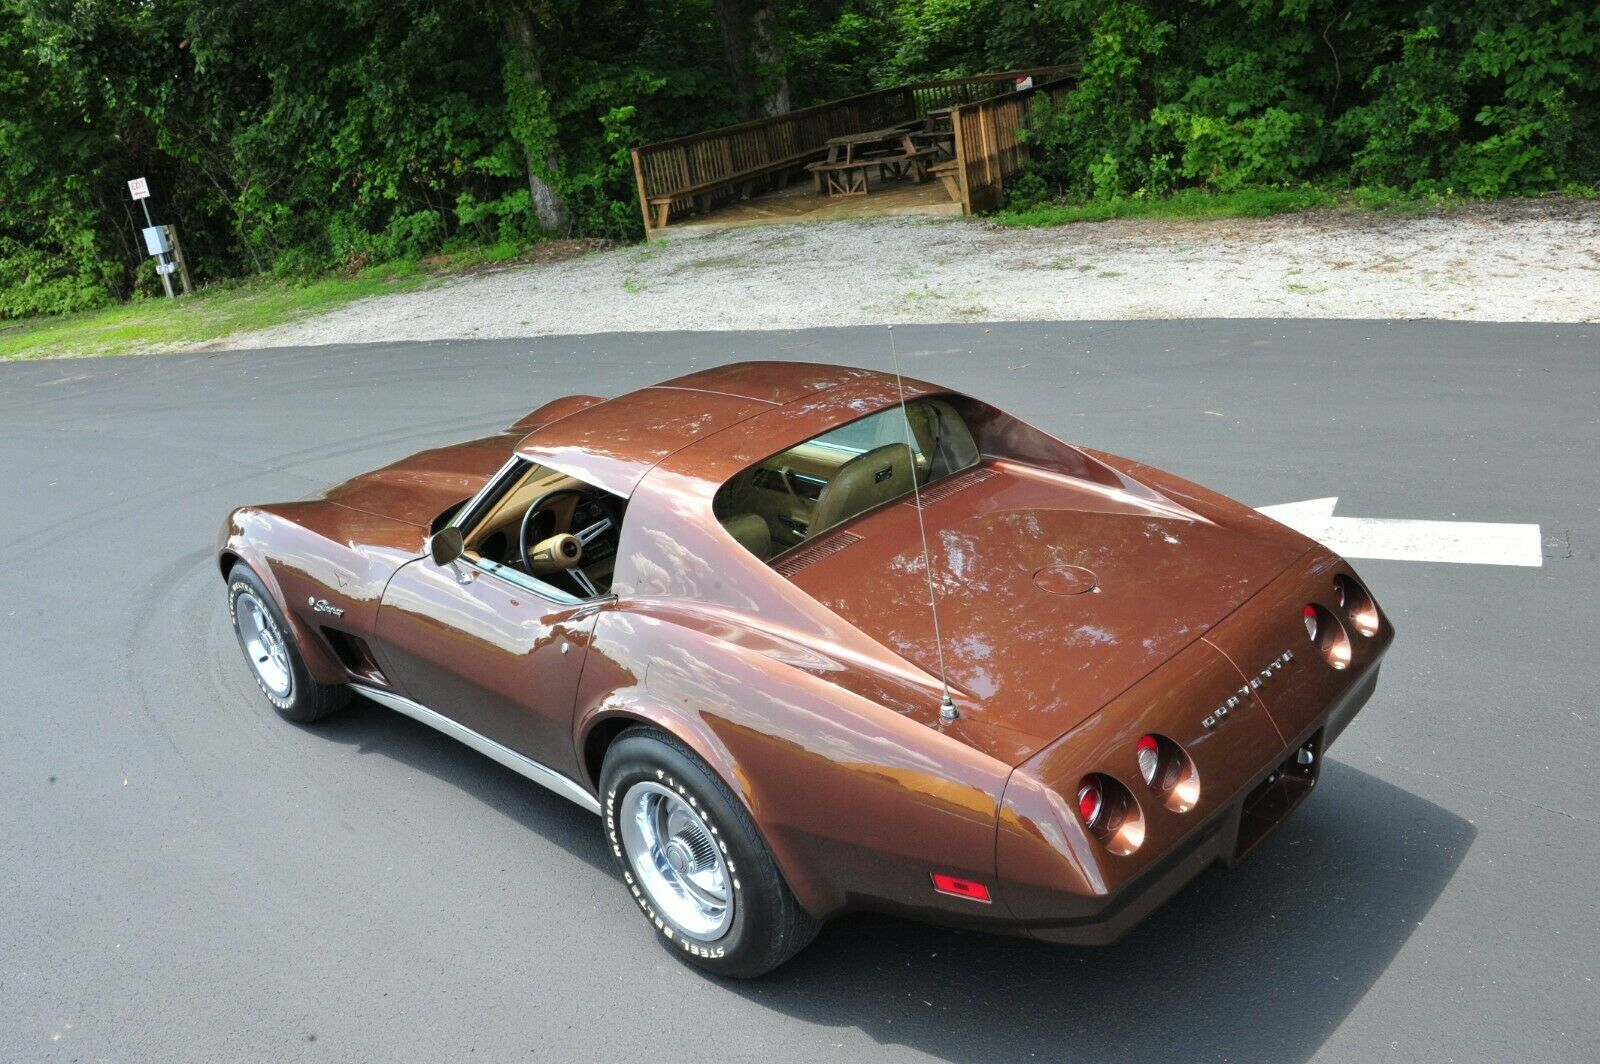 This one-owner 1974 Corvette is currently being auctioned by the NCM to raise money for future exhibits at the Museum!